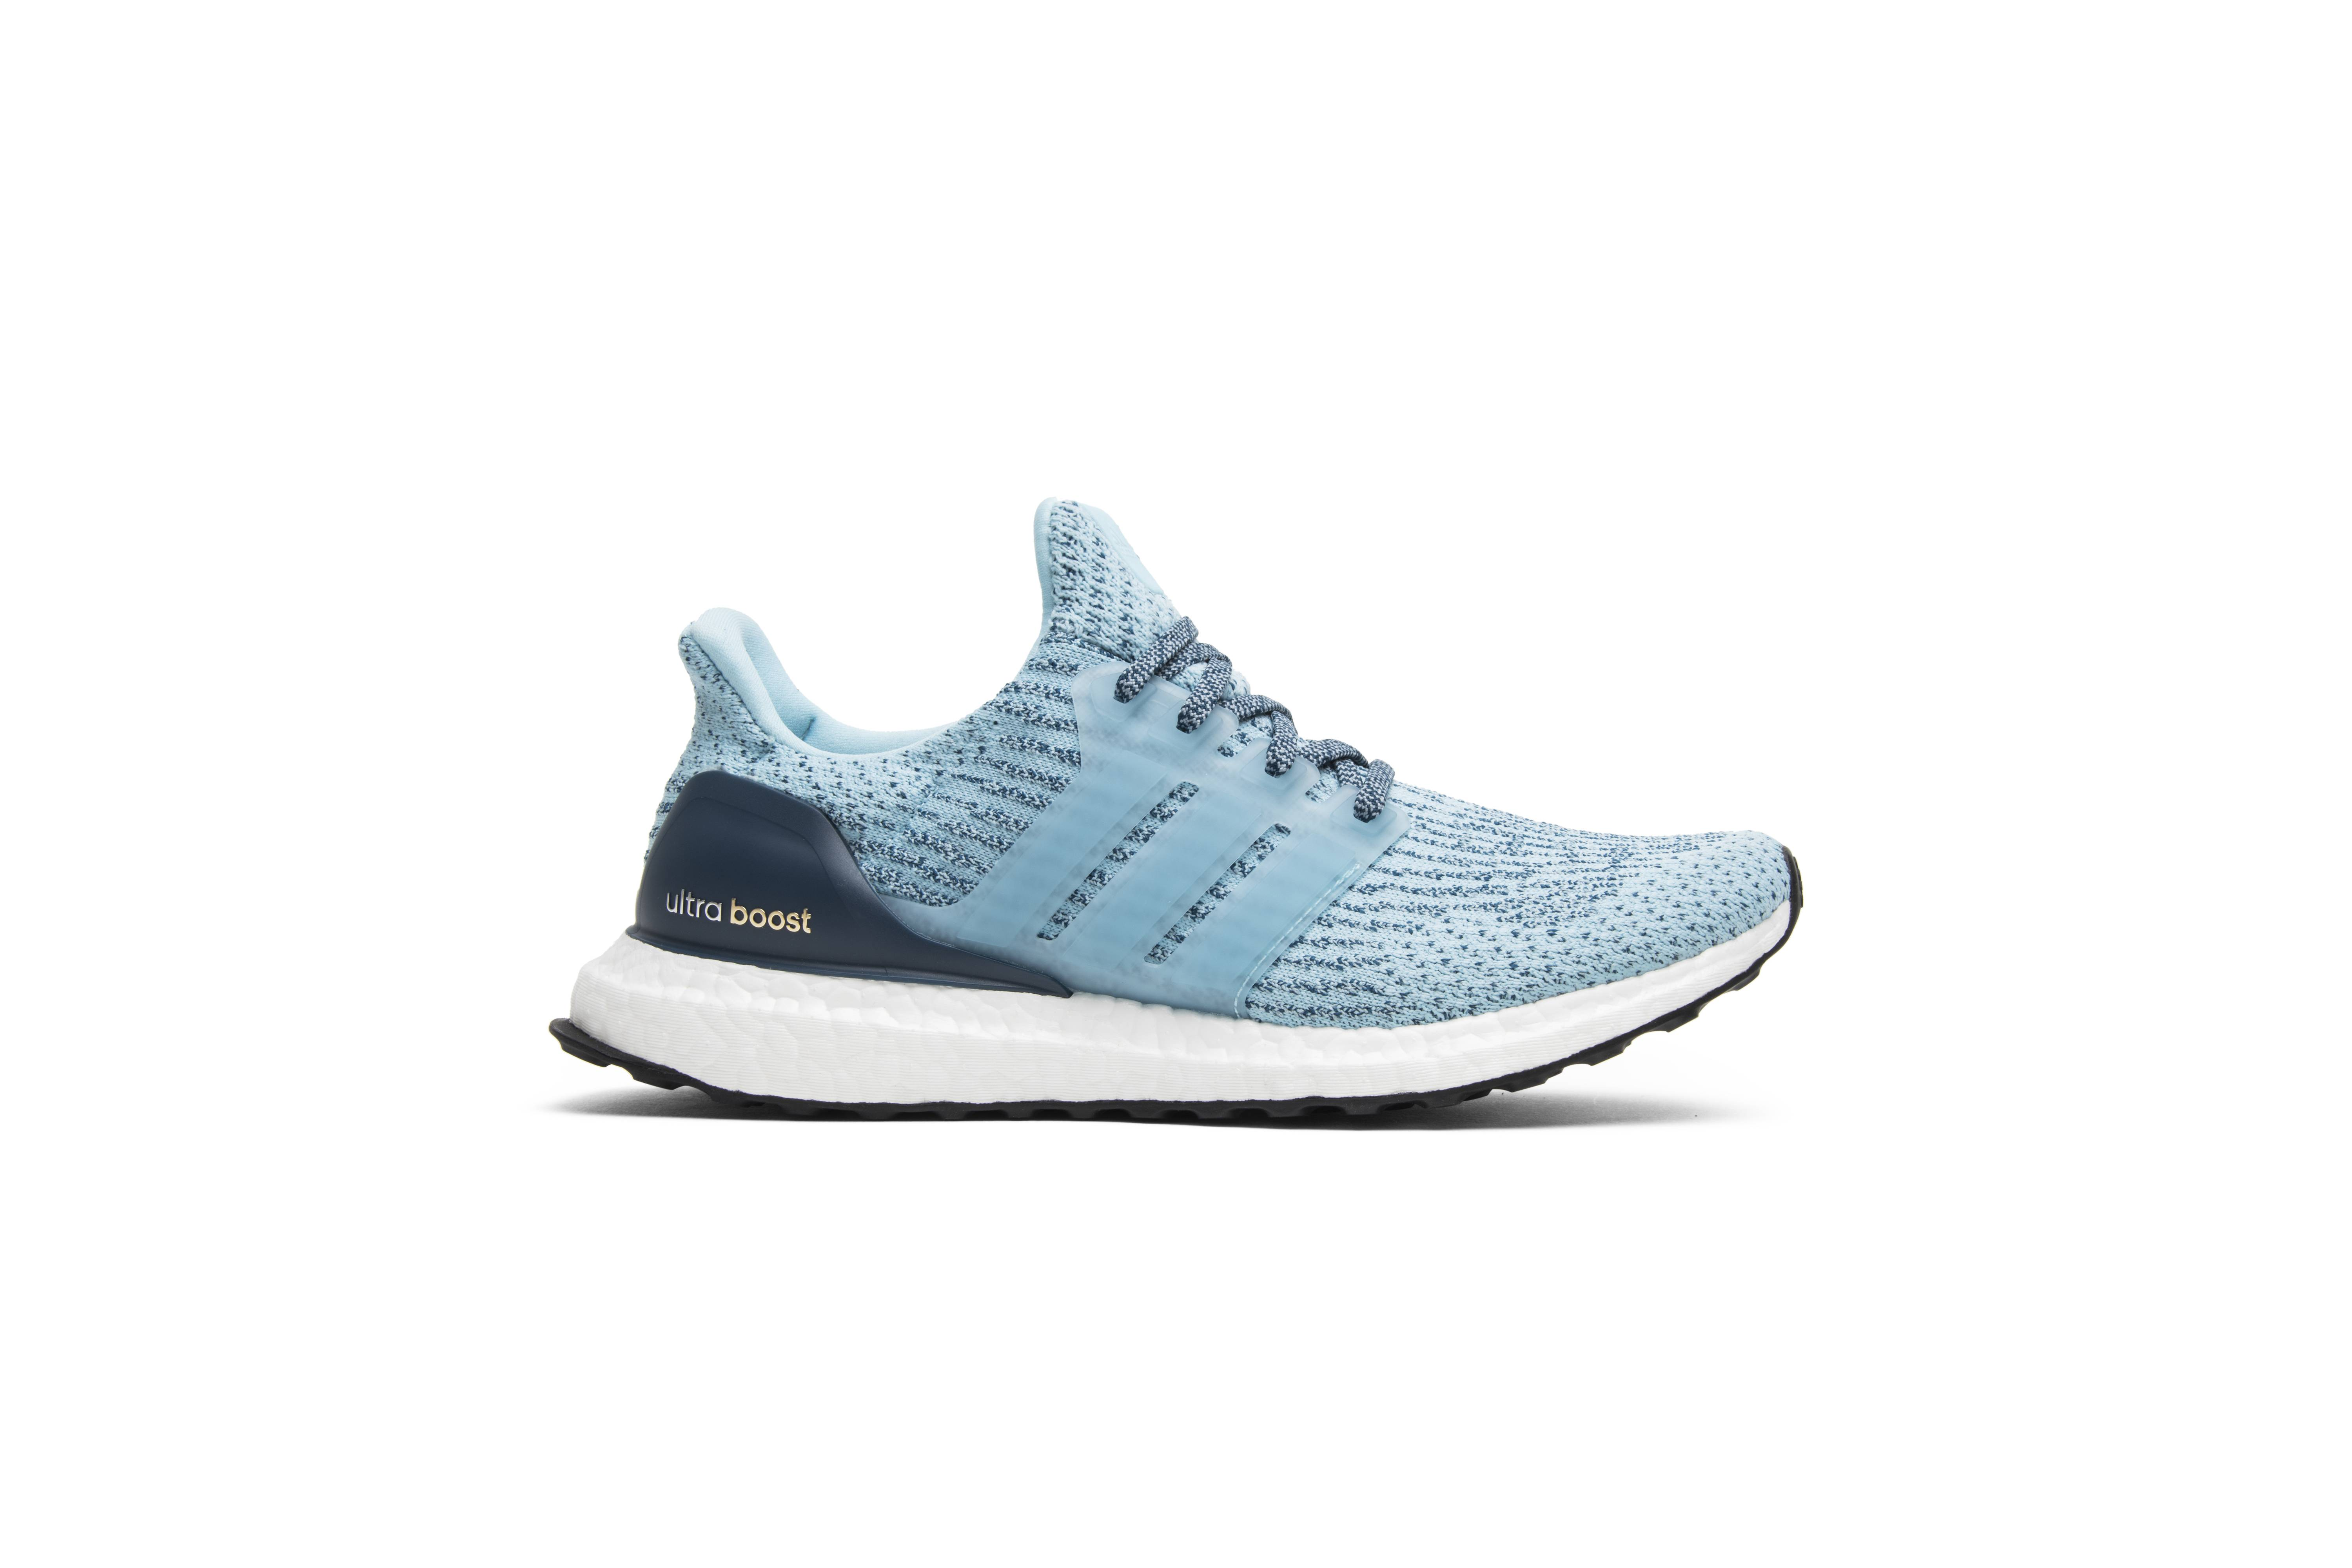 f7ace9638baf9 ... promo code for wmns ultraboost 3.0 icey blue adidas s82055 goat 6d3bf  24b9e